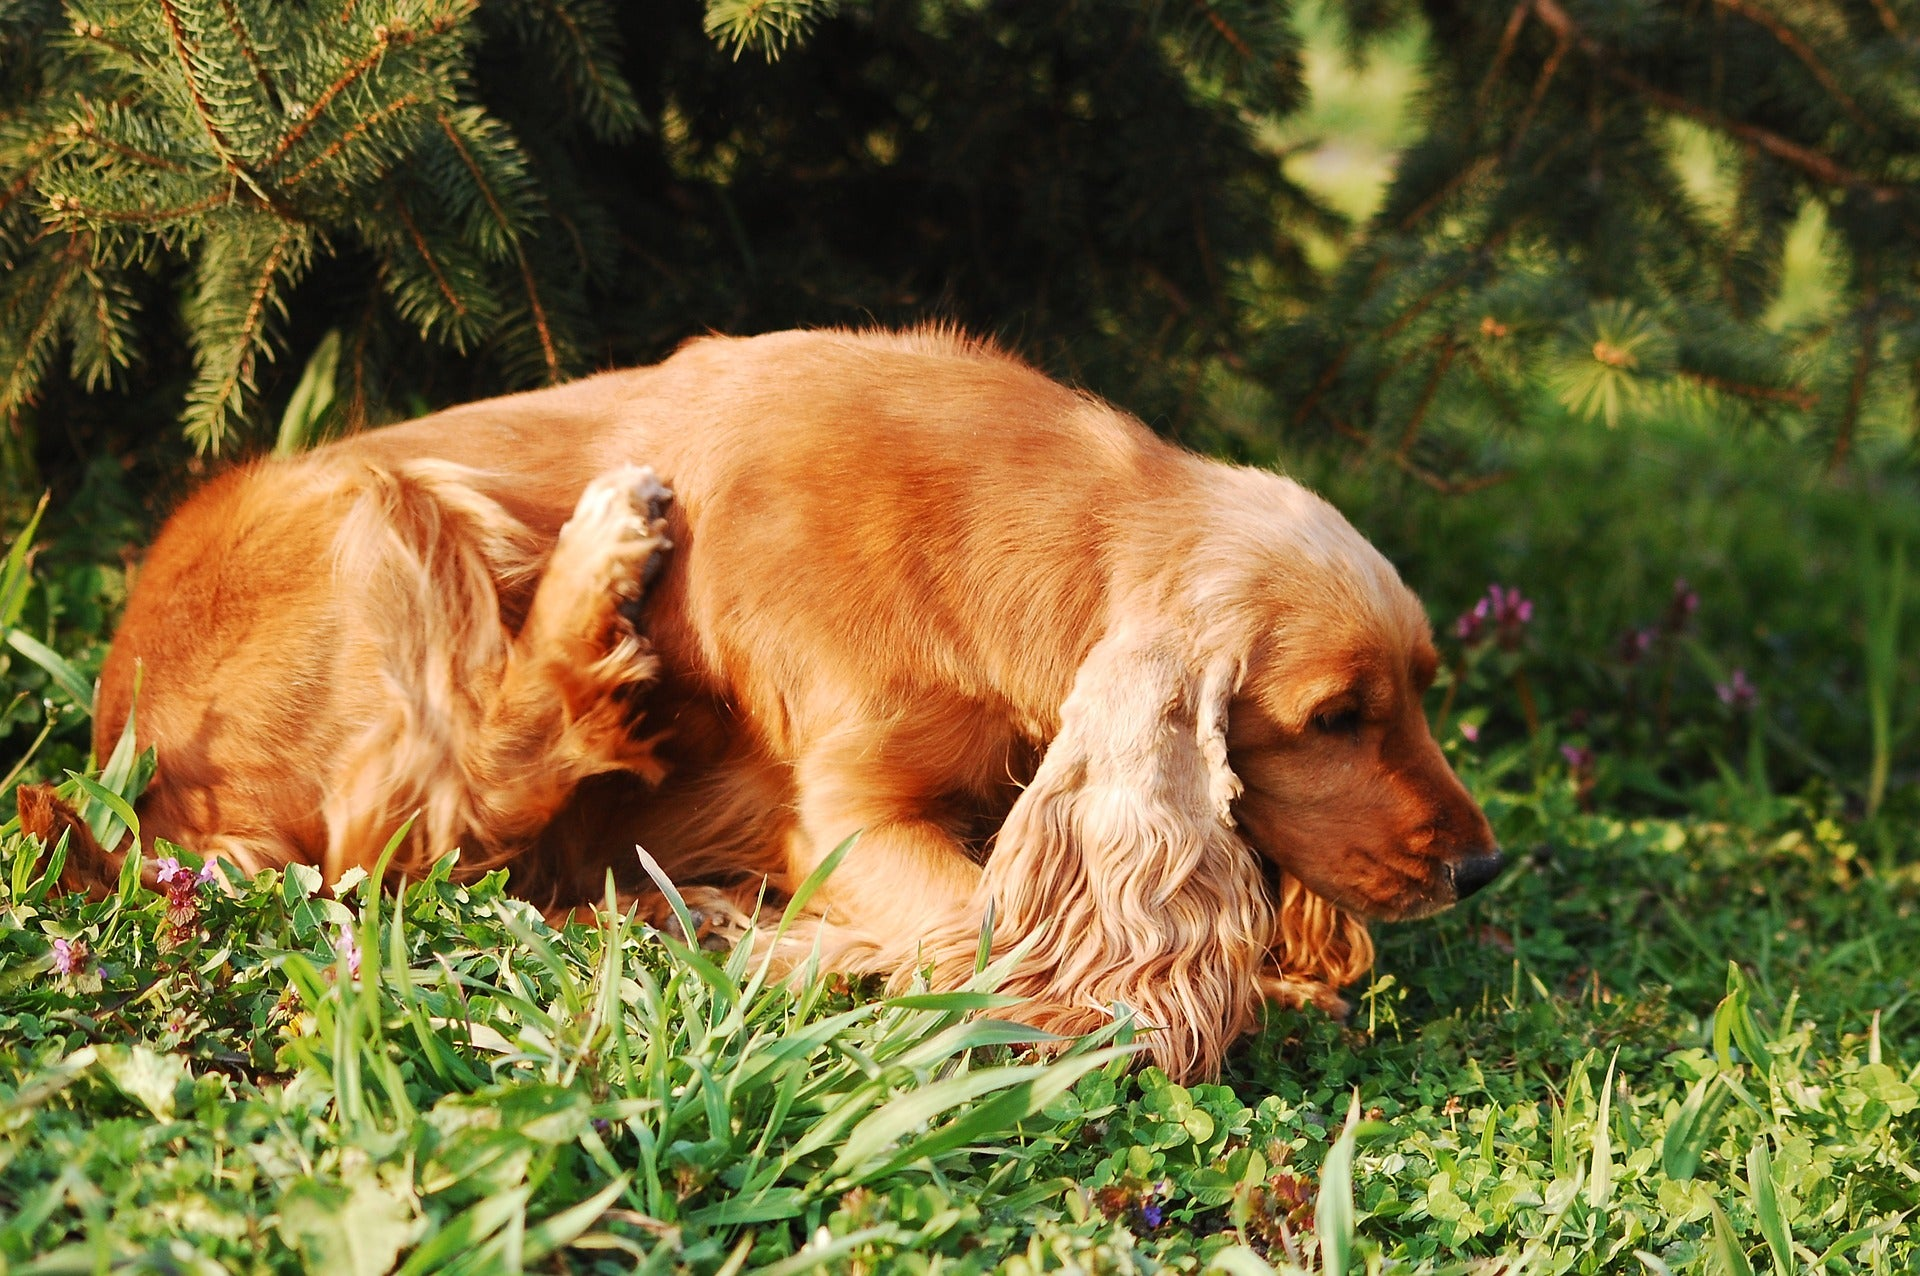 5 Natural Ways To Soothe Your Dog's Dry, Itchy Skin